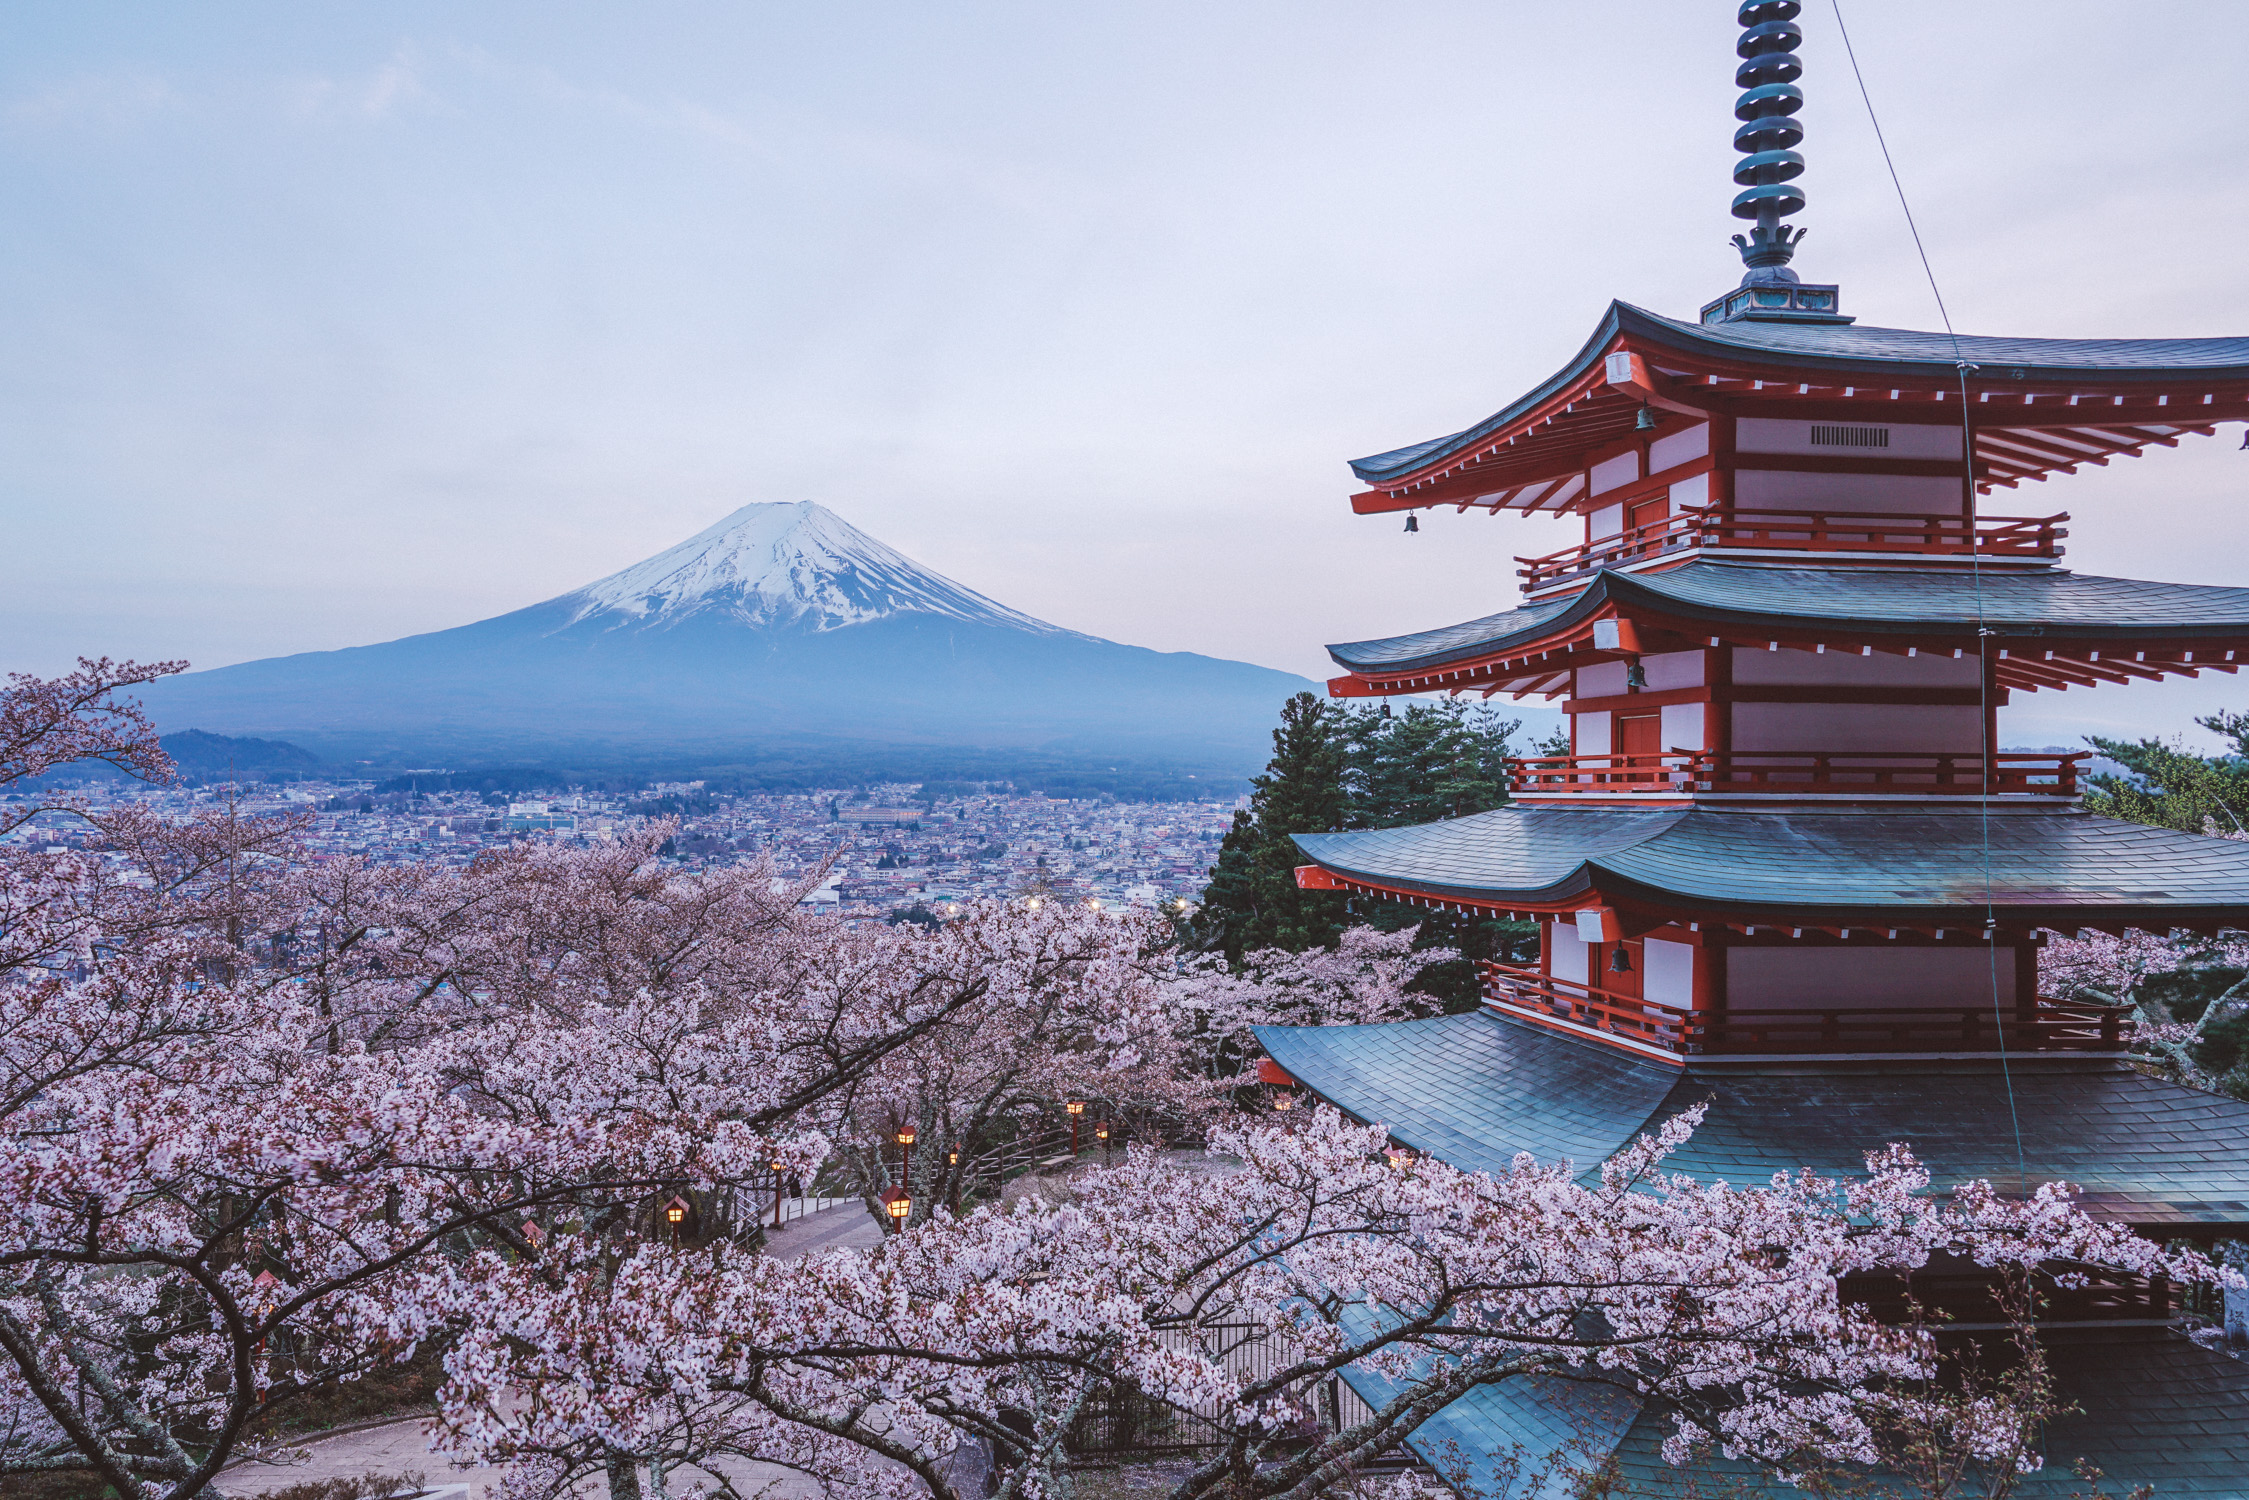 The Chureito Pagoda during cherry blossom with mt-Fuji [David Tan]